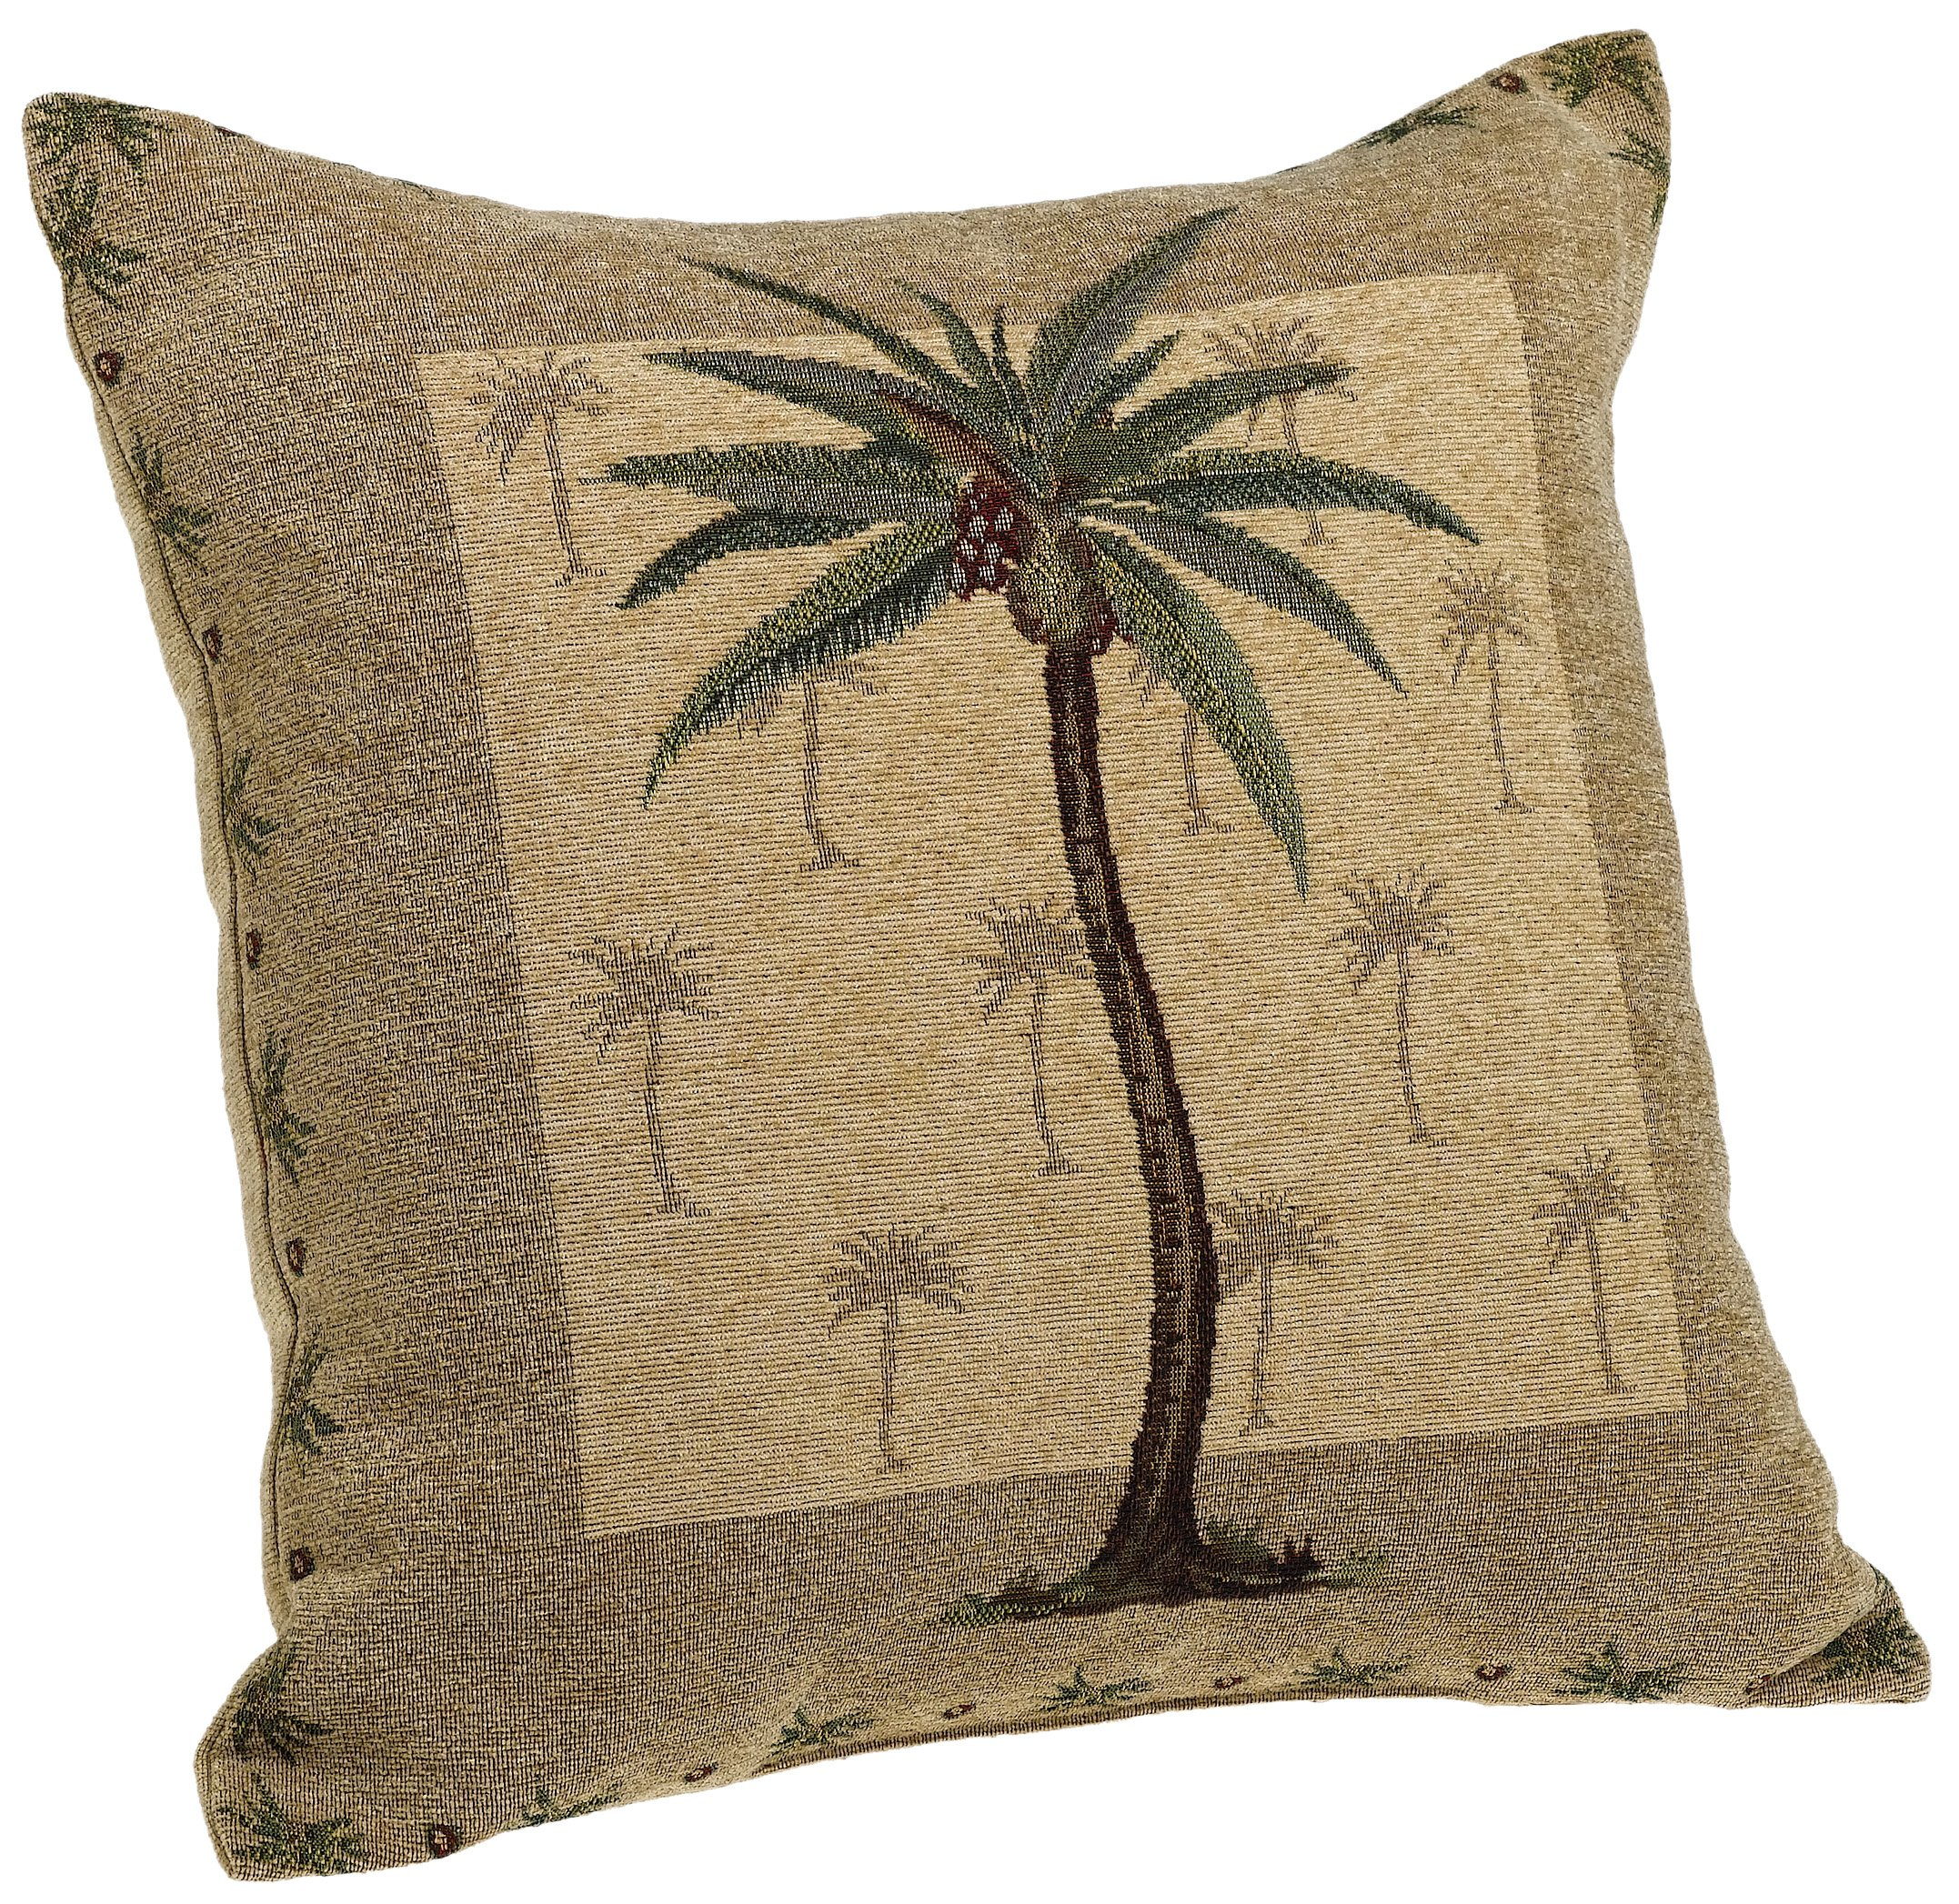 Brentwood Originals Panama Jacquard Chenille 18-by-18-inch Decorative Pillow, Palm Tree by Brentwood Originals